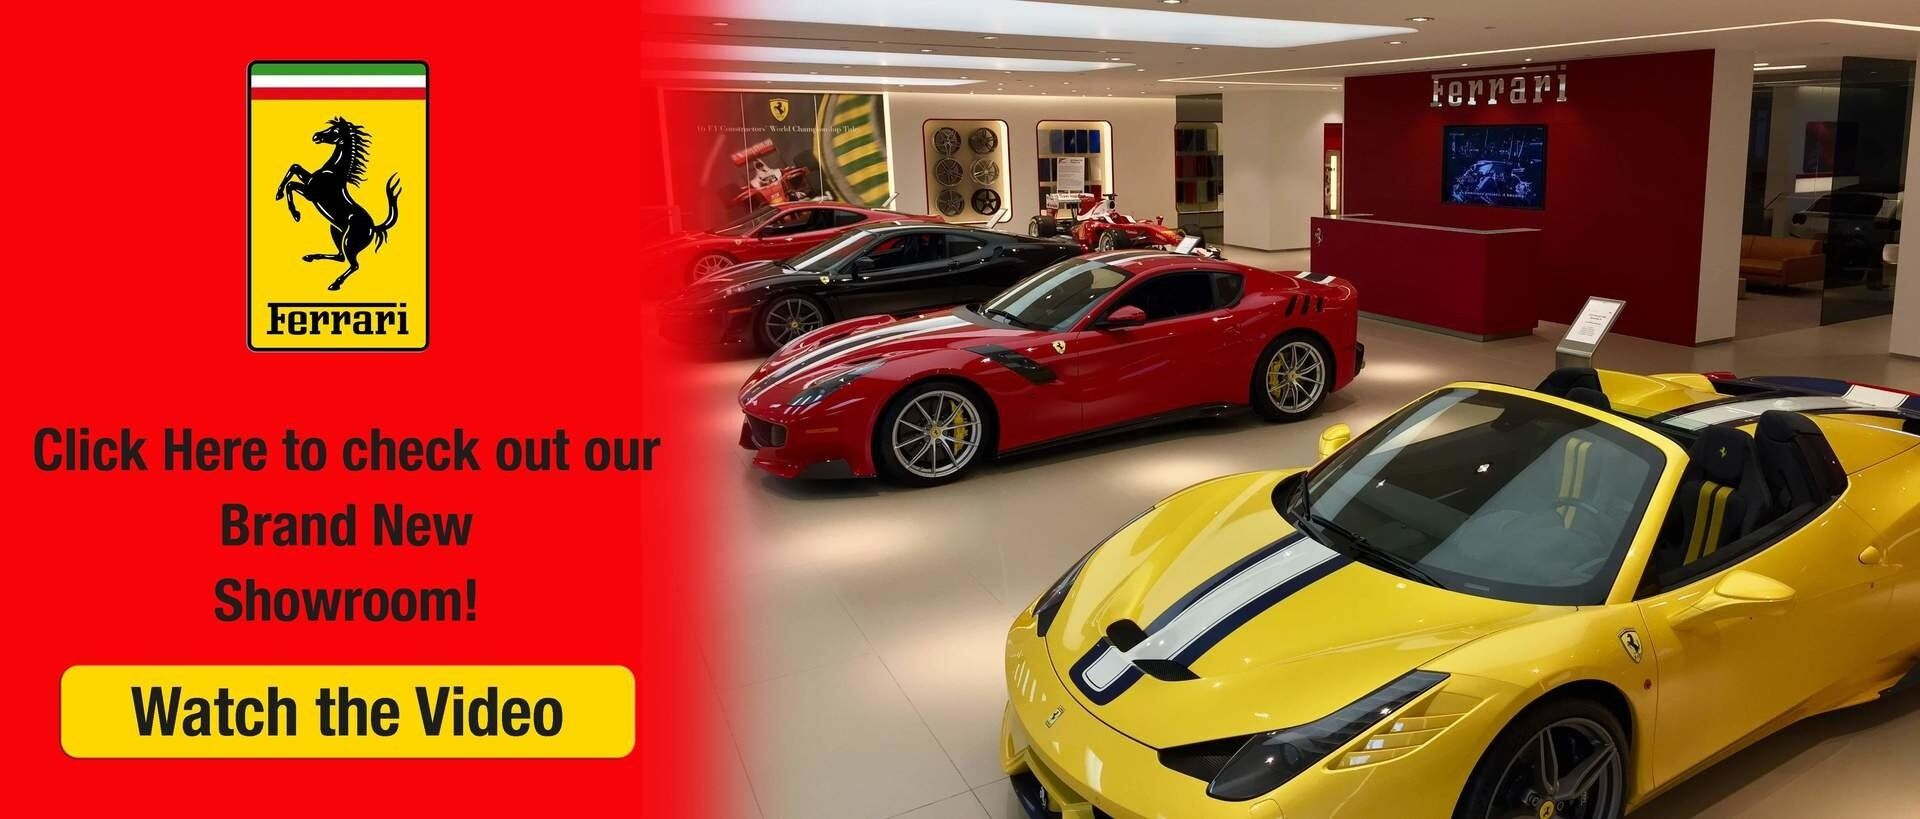 New Ferrari Showroom